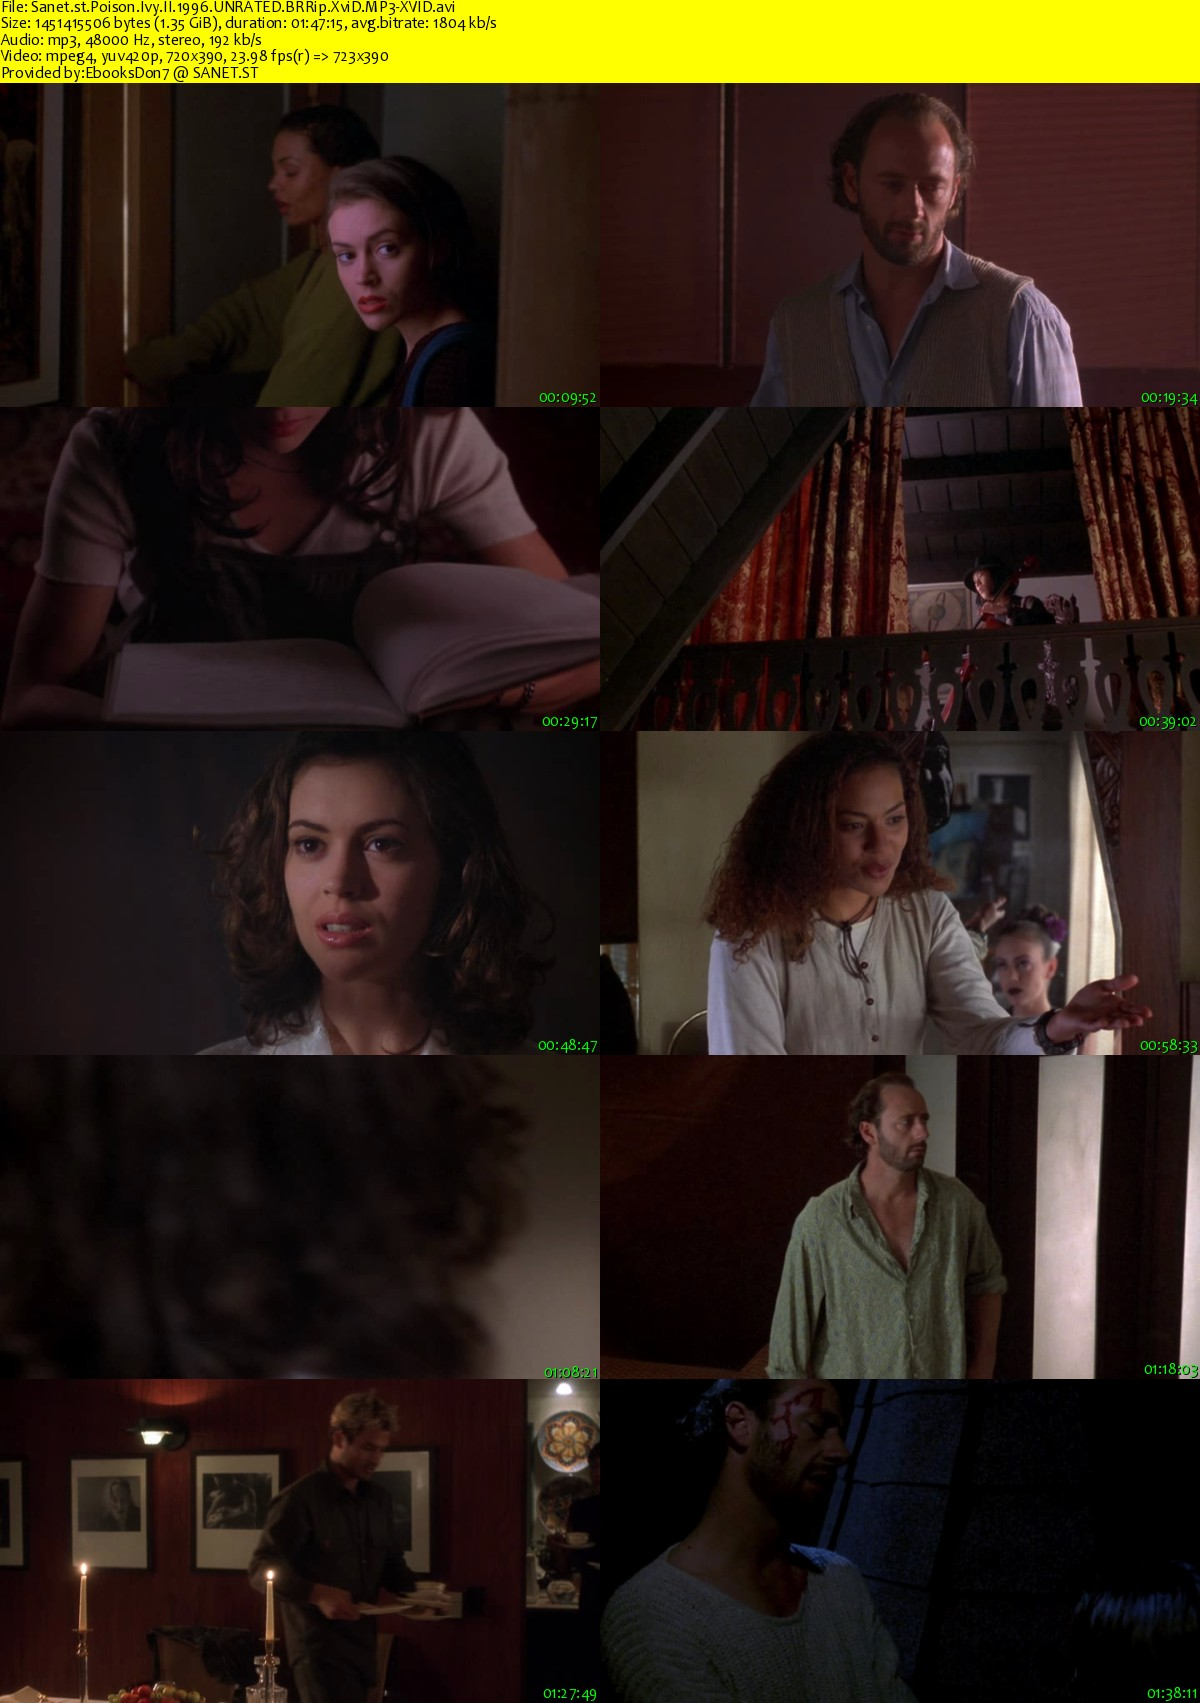 Alyssa Milano Poison Ivy 2 download poison ivy ii 1996 unrated brrip xvid mp3-xvid